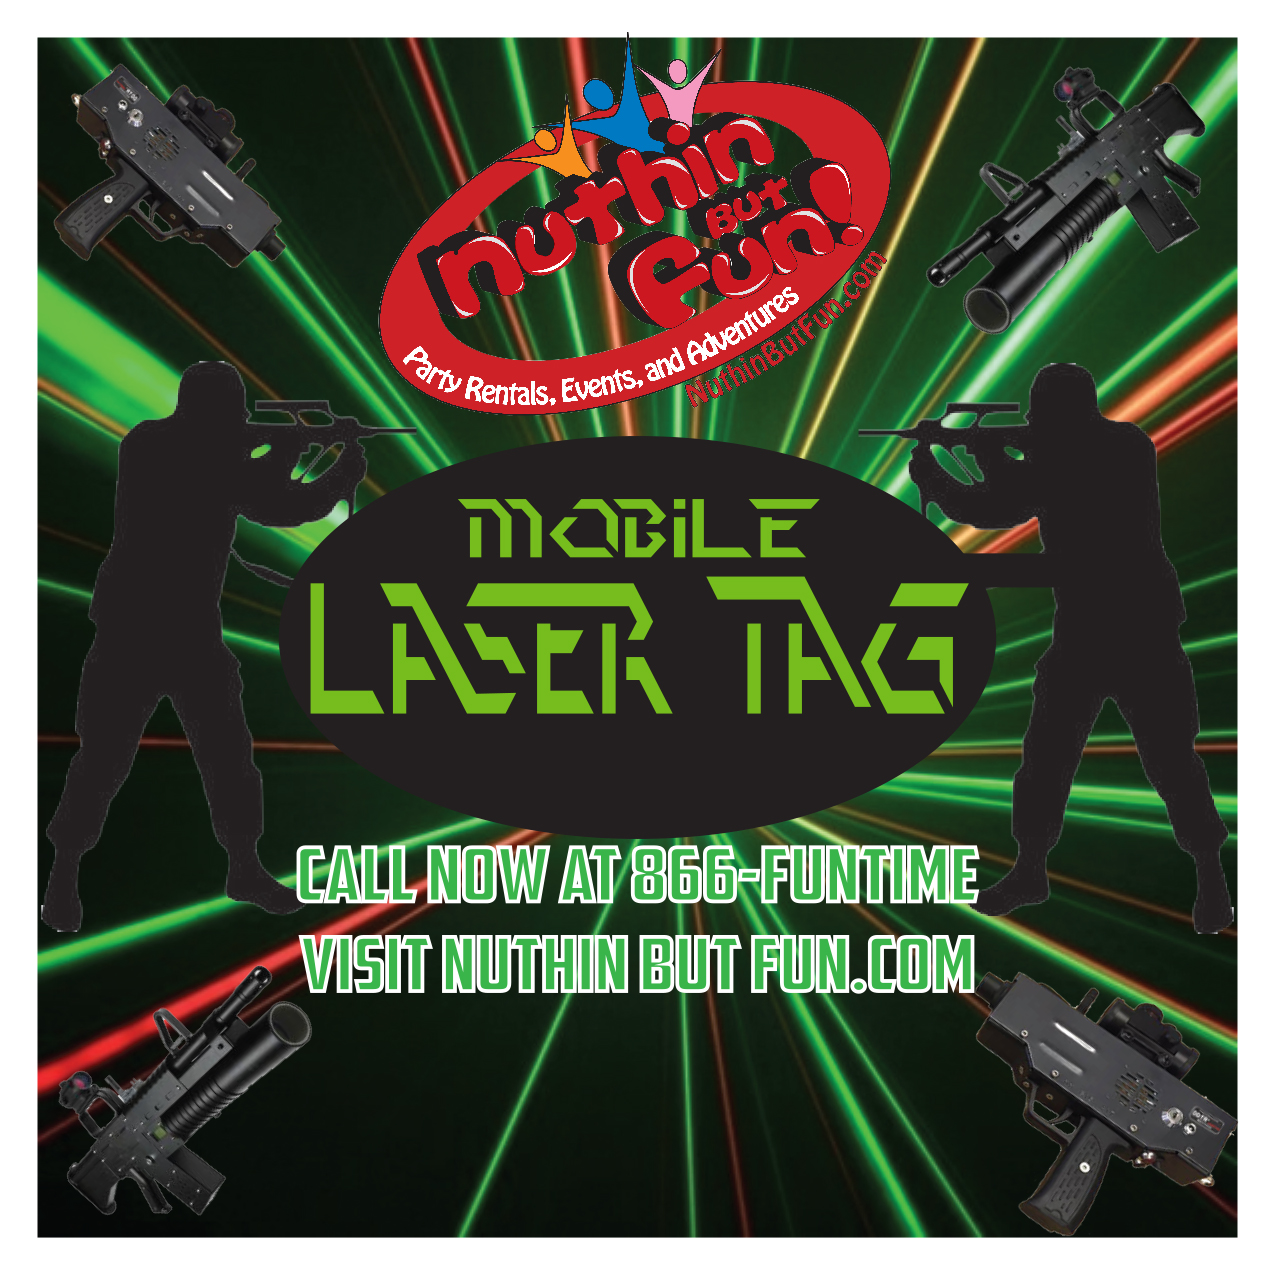 MASS Laser Tag Tournament Party Rentals in Berlin, Massachusetts.